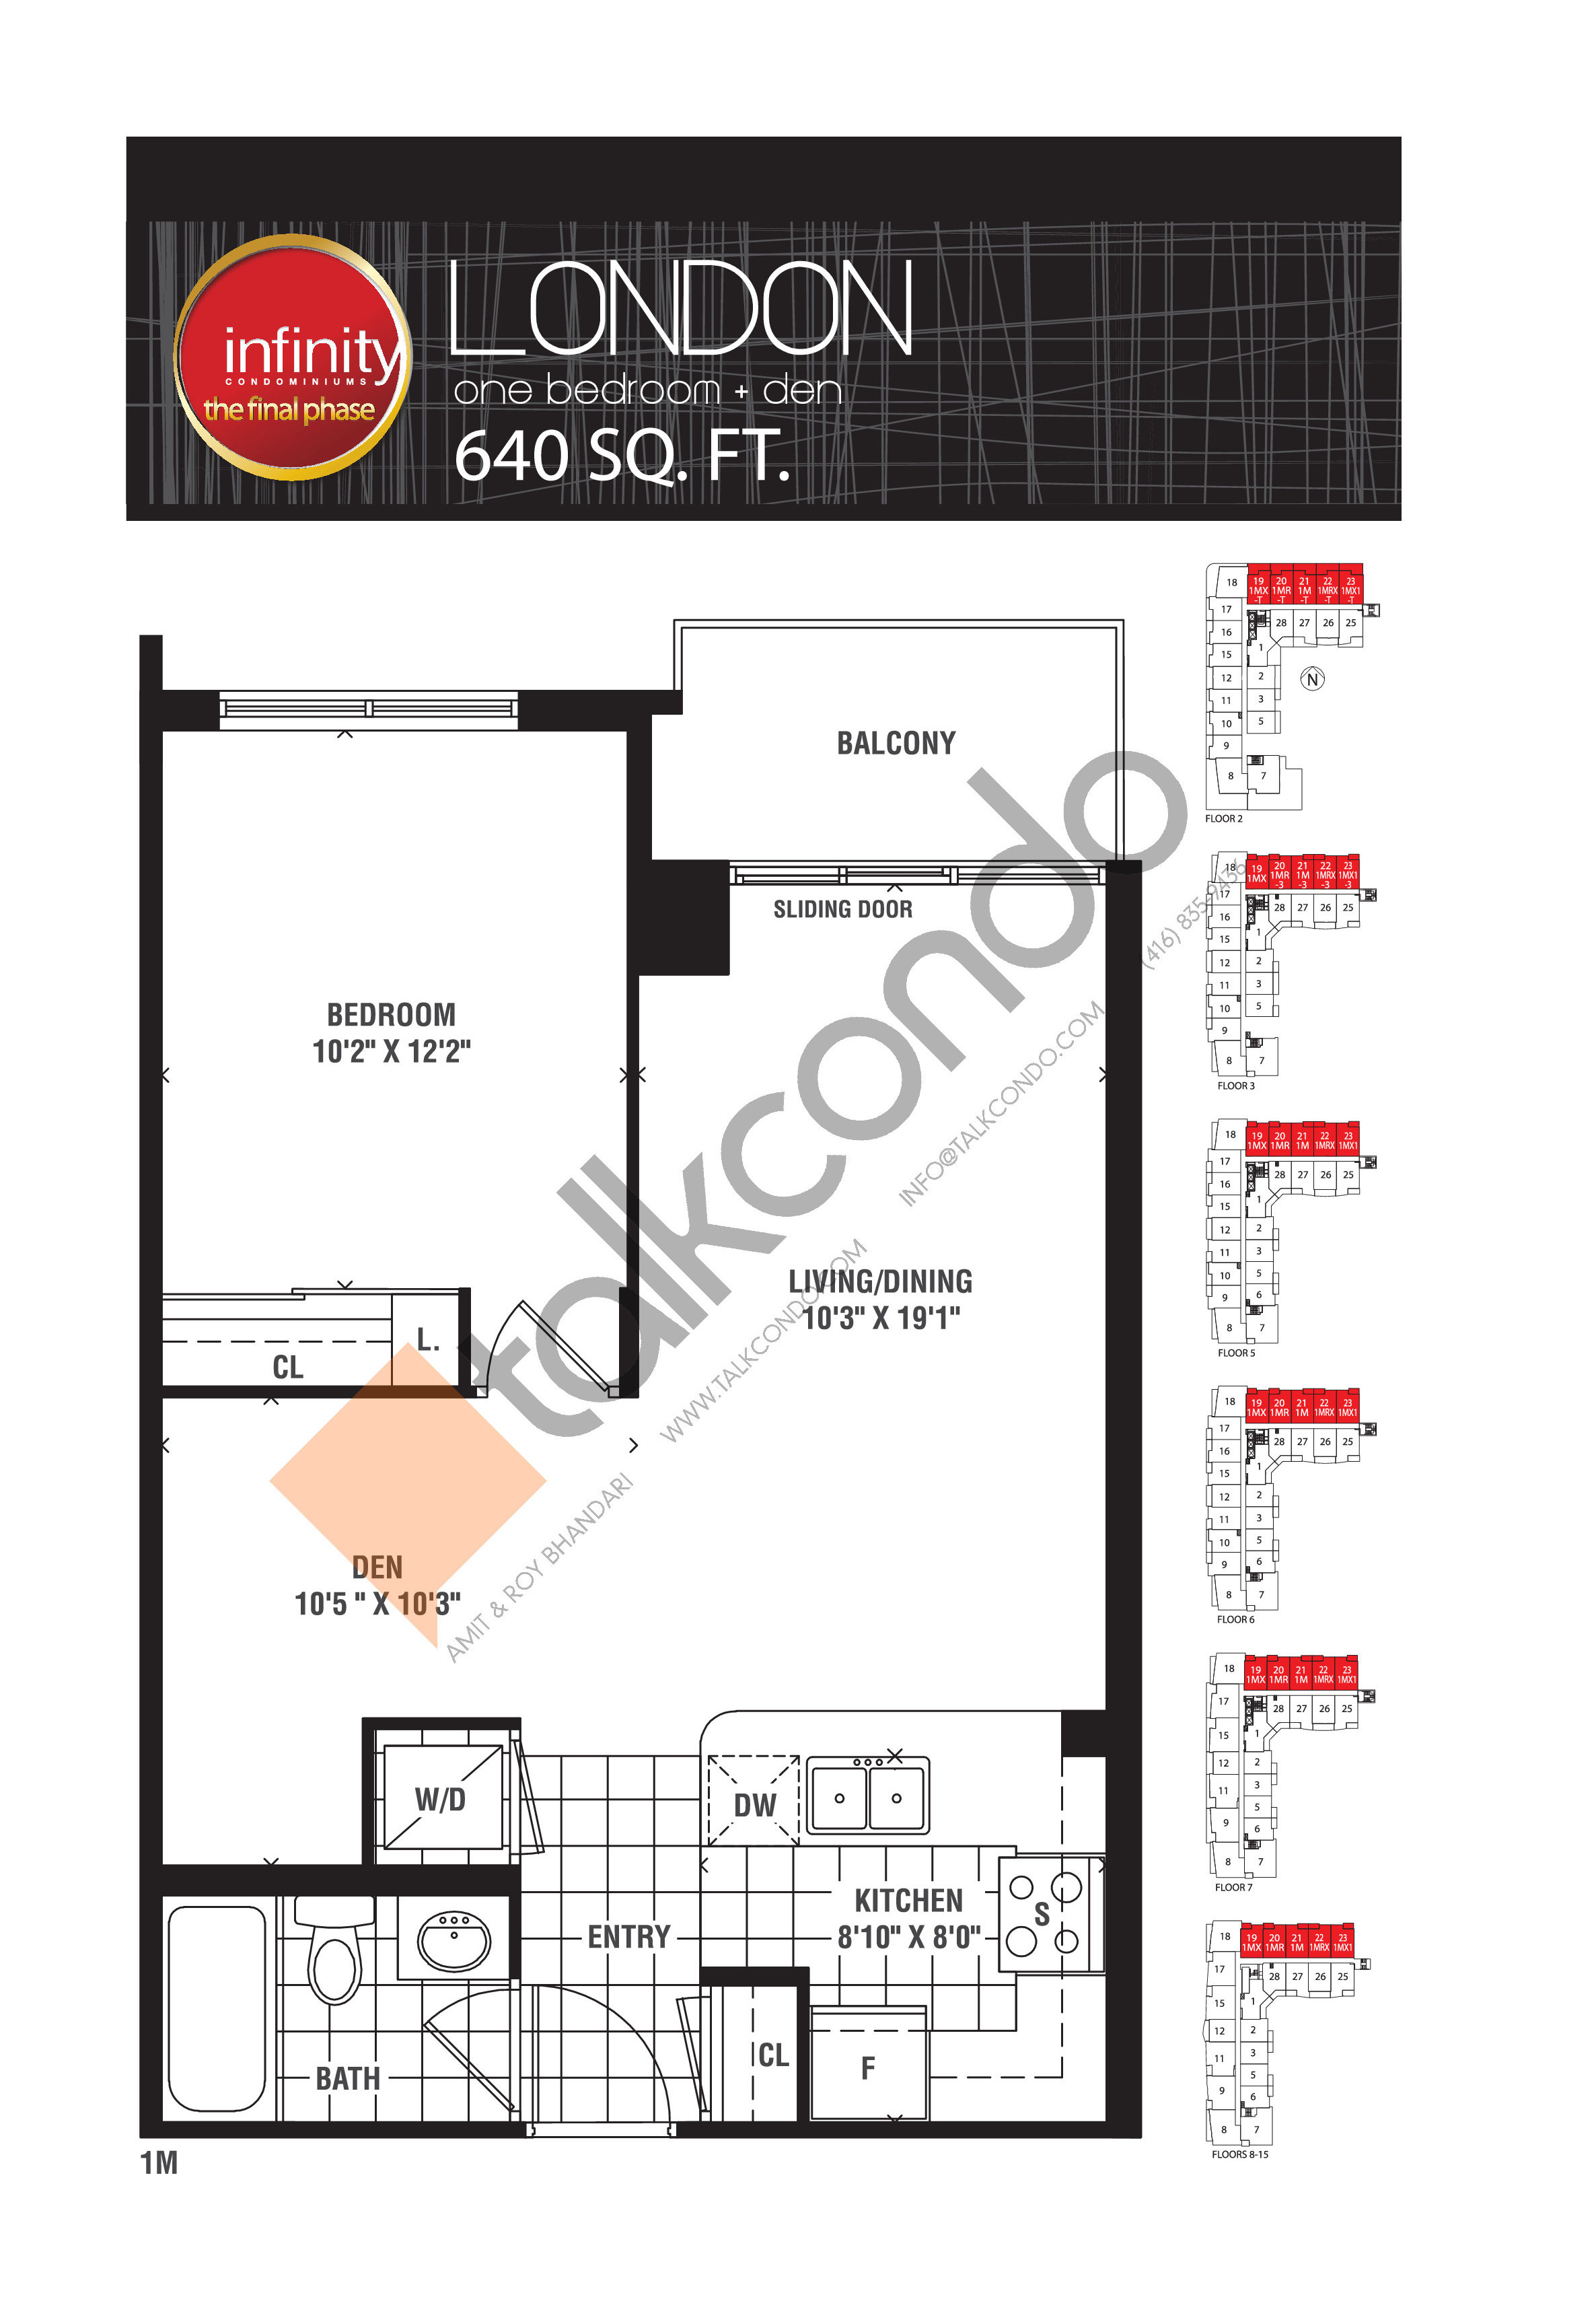 London Floor Plan at Infinity: The Final Phase Condos - 640 sq.ft